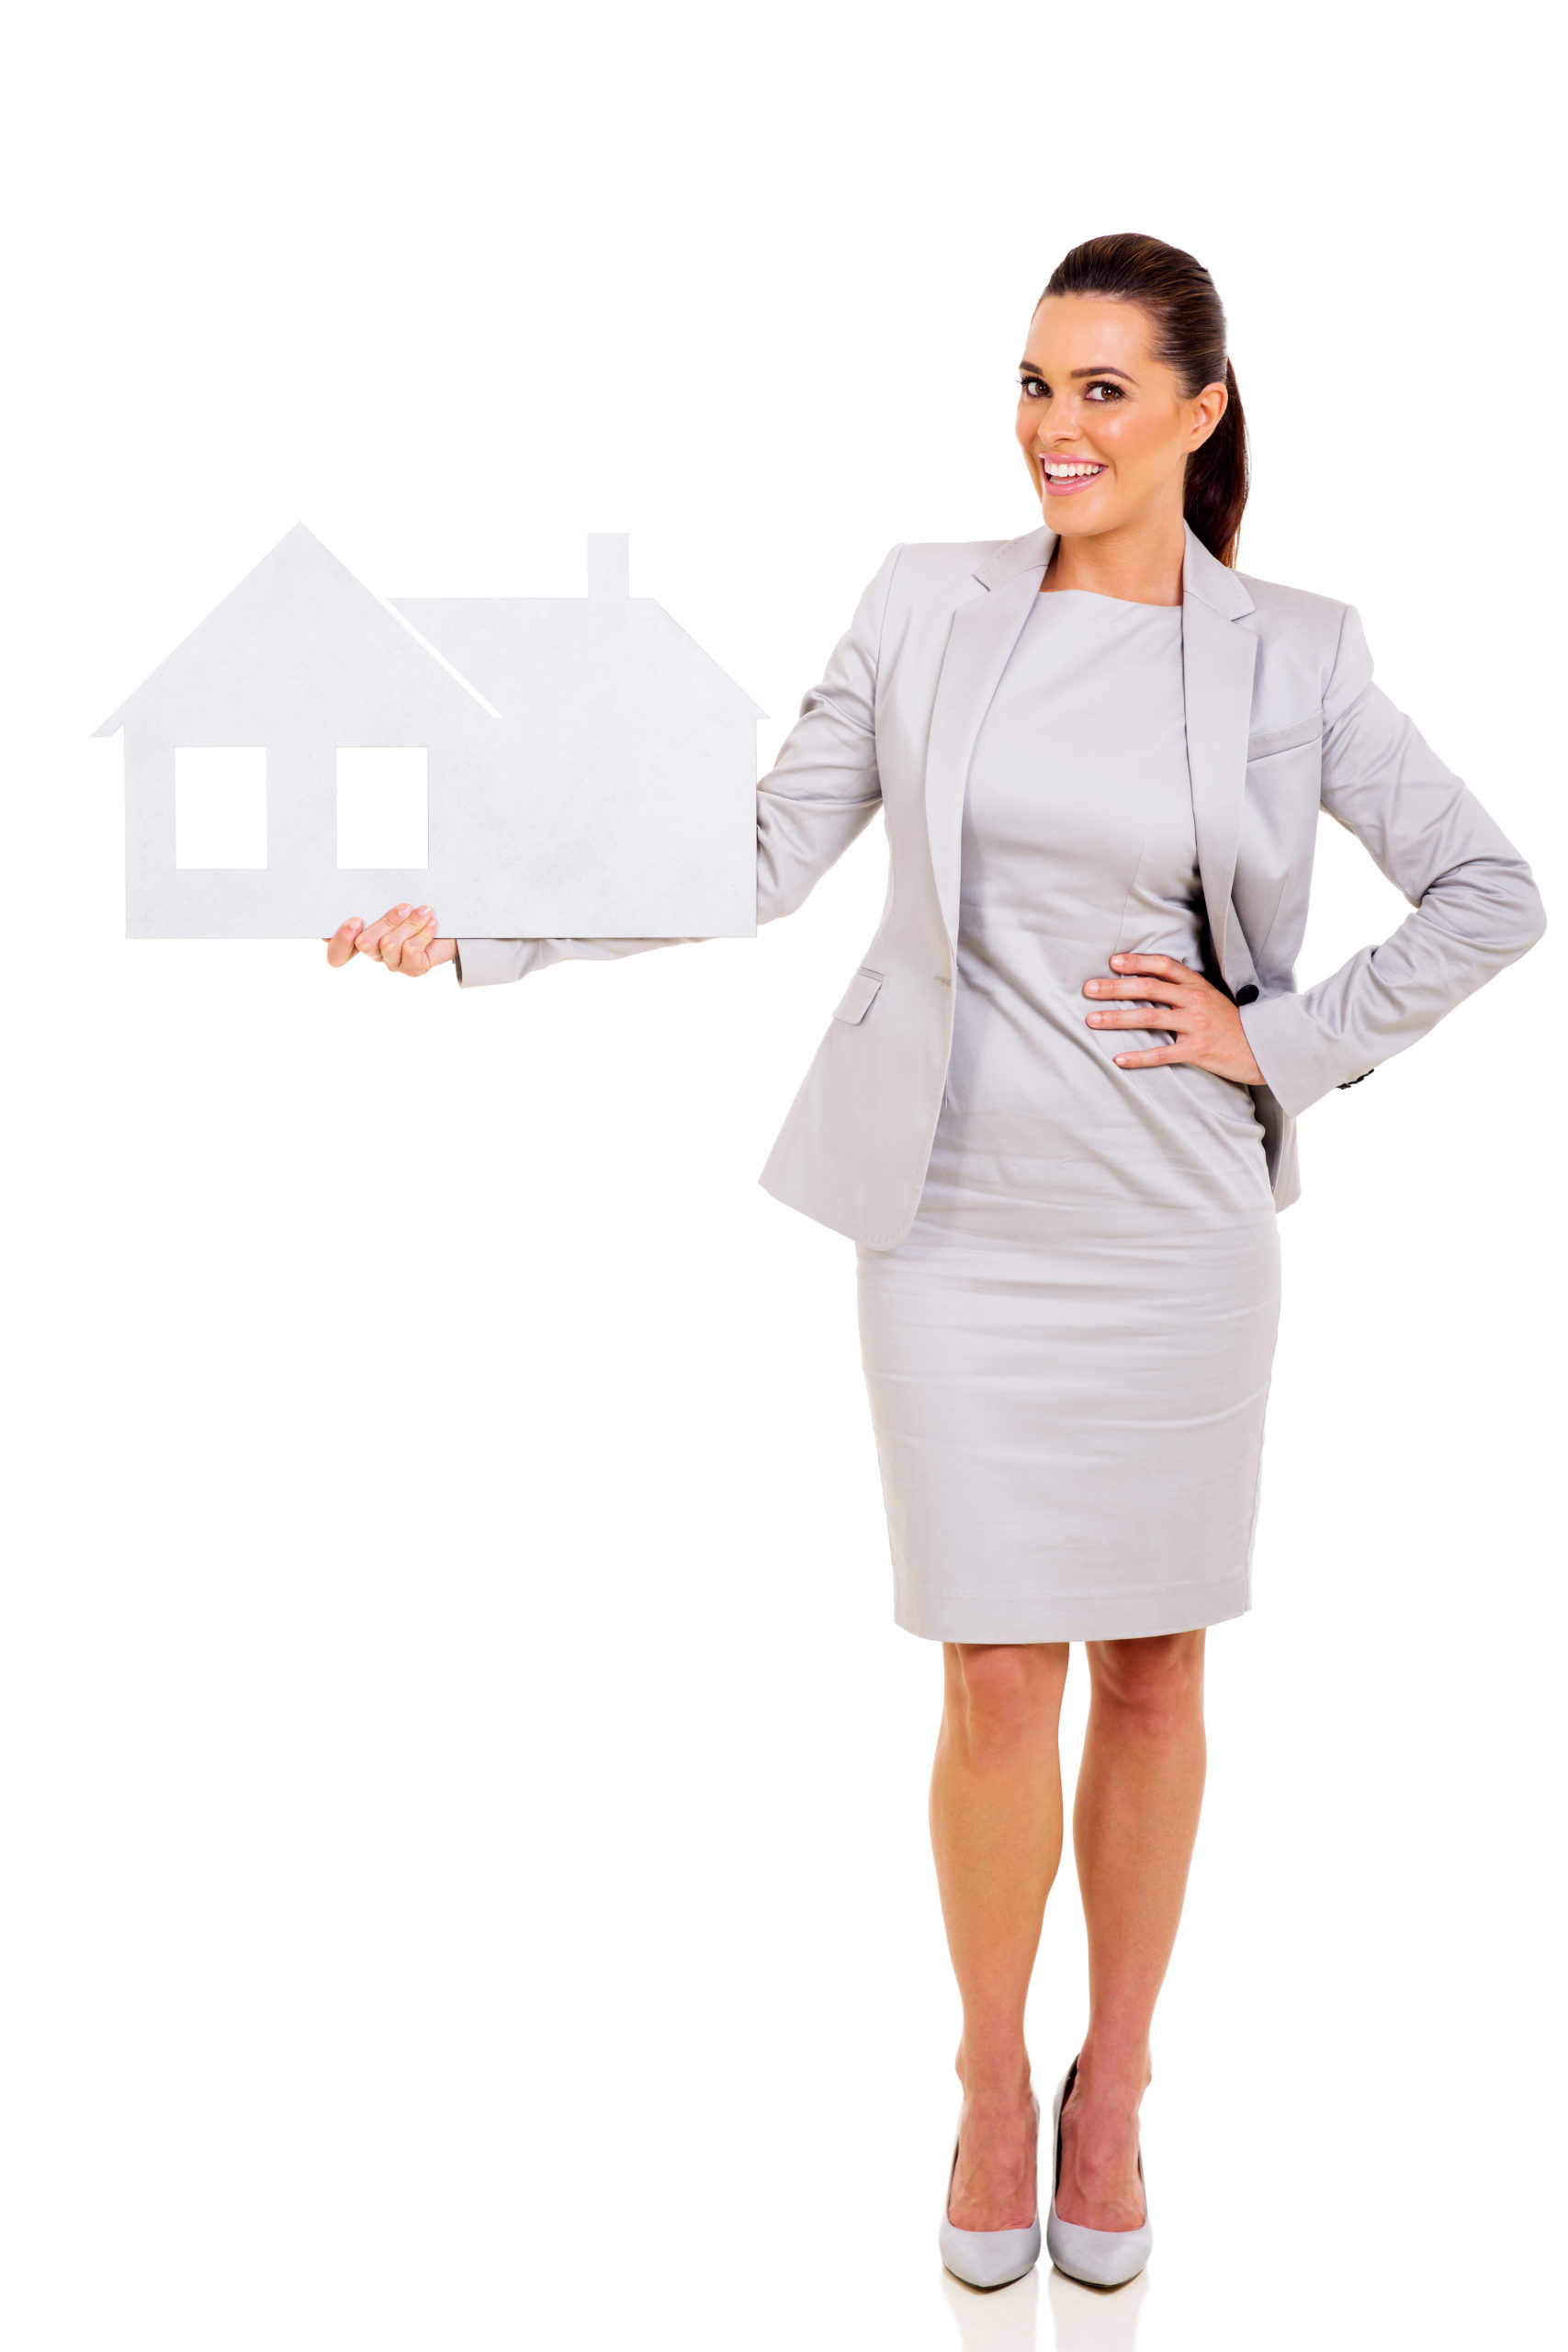 real estate agent holding